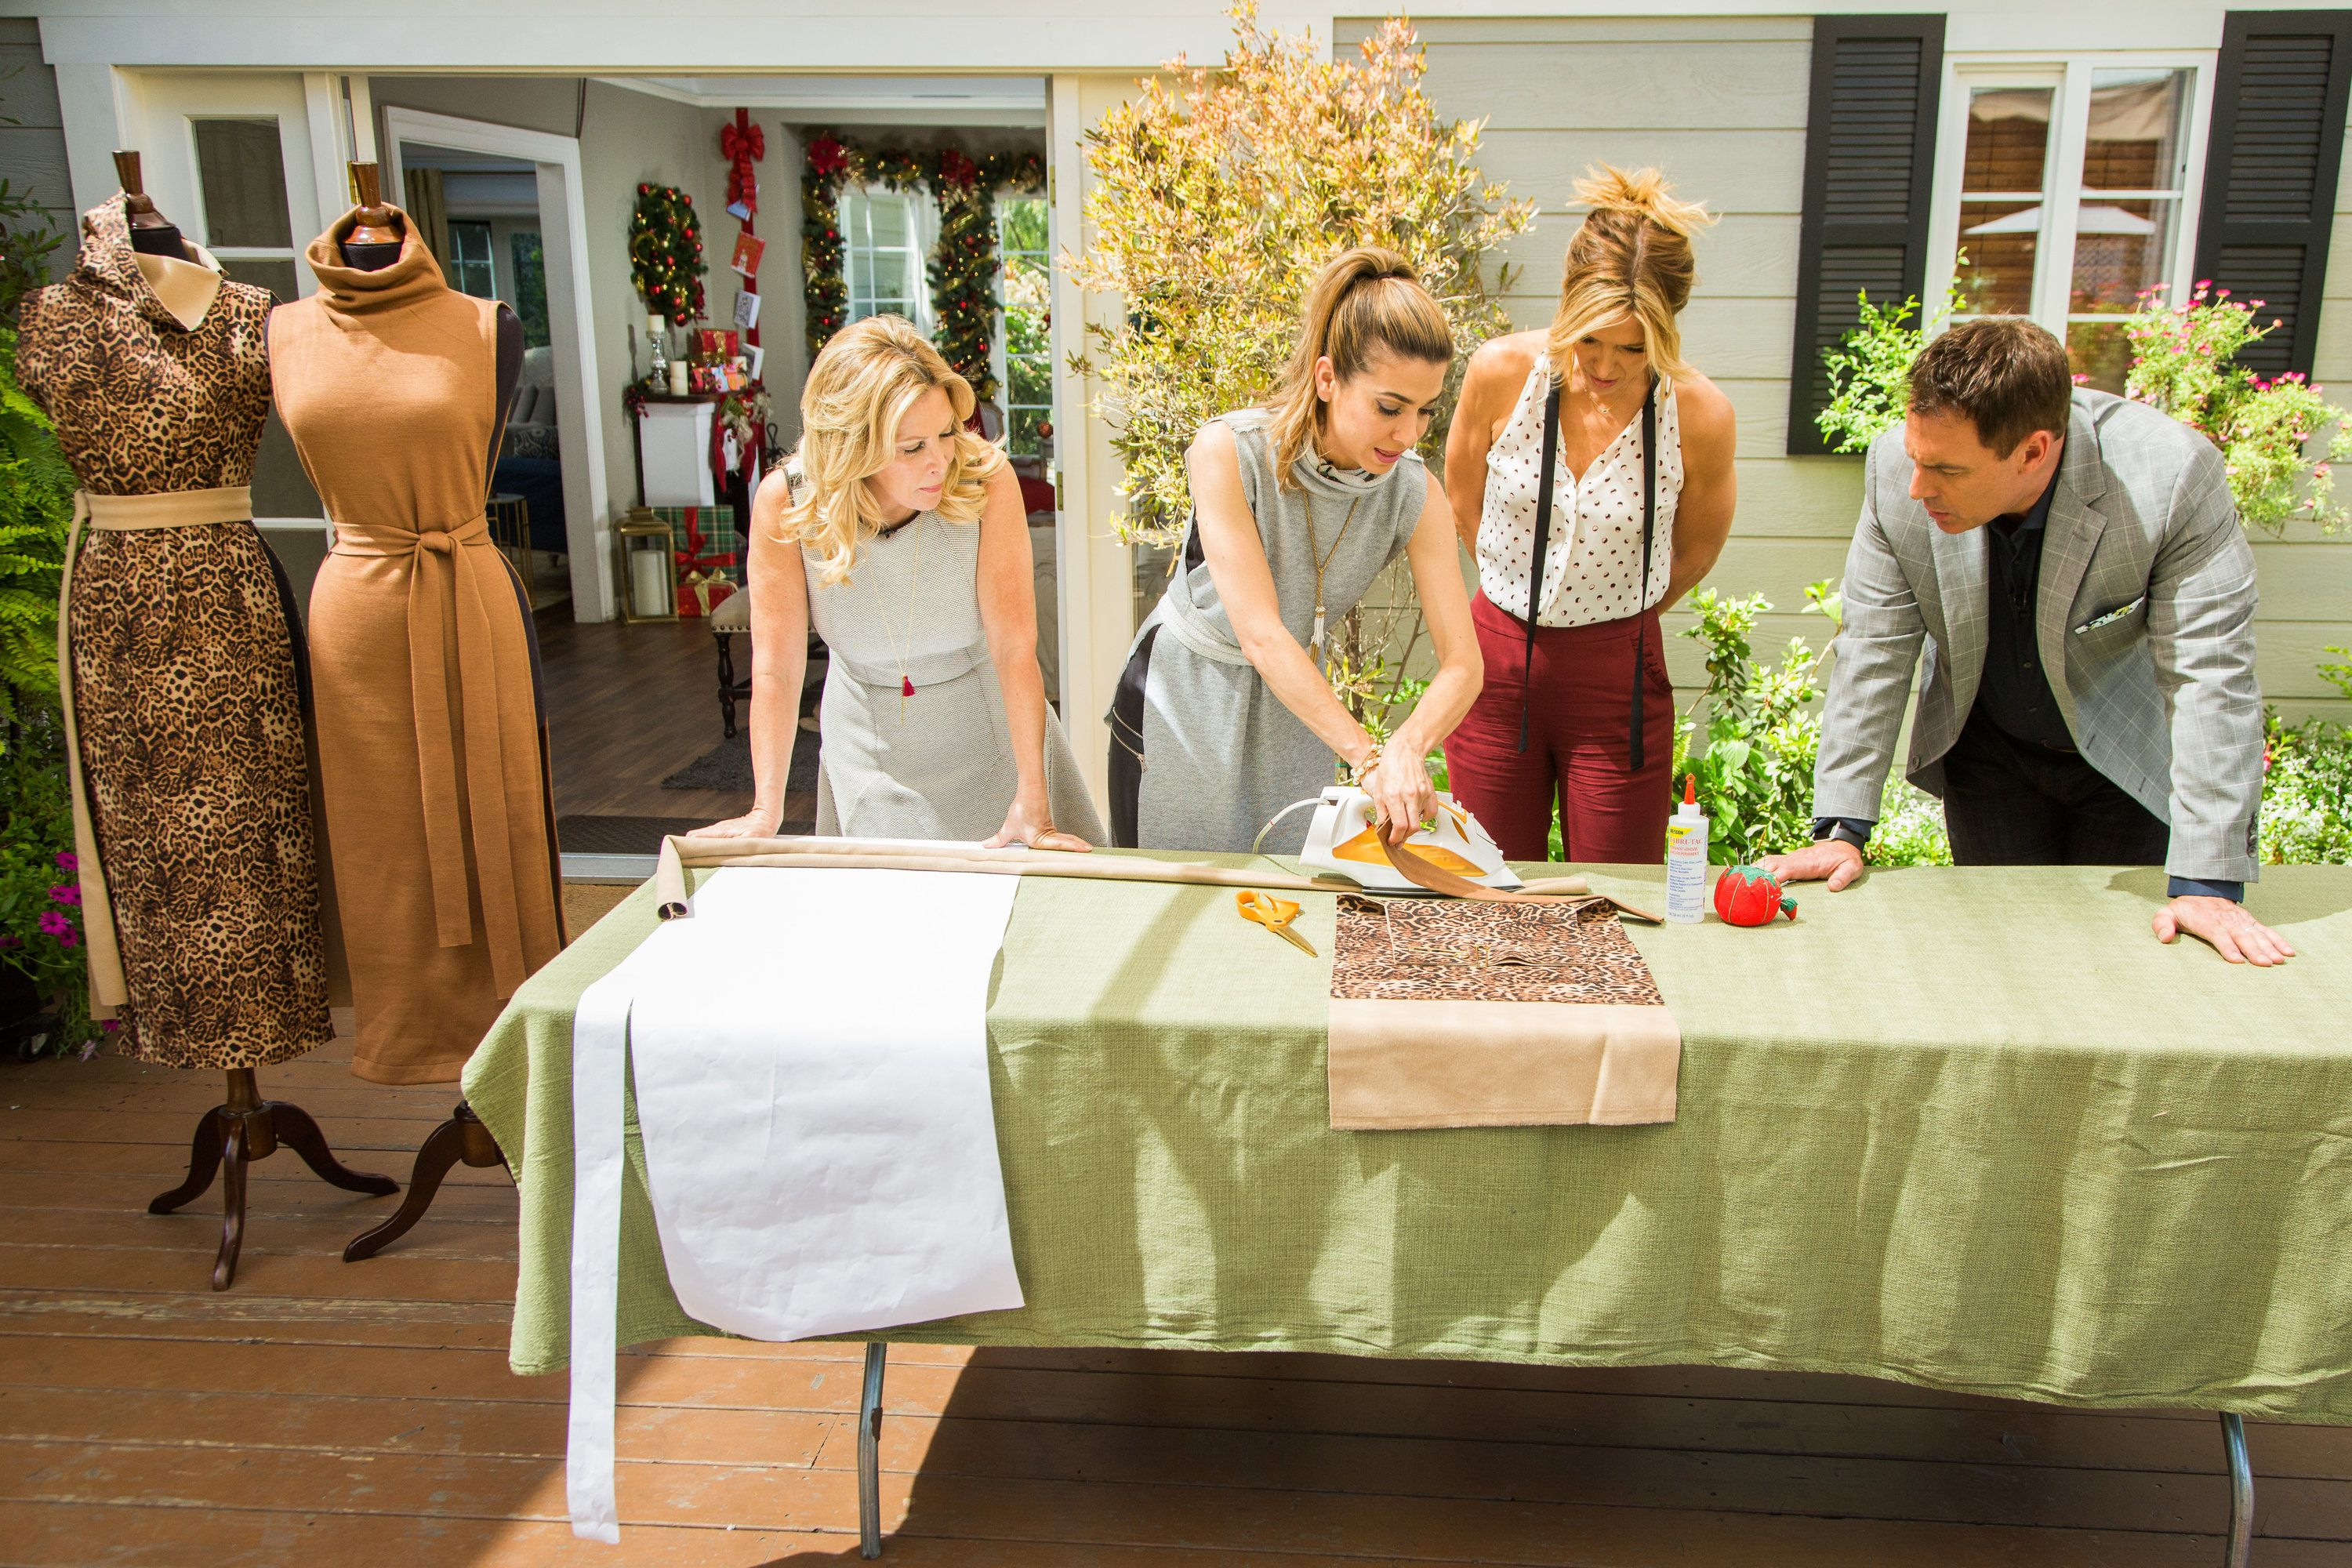 Hollywood steals home and family - Orly Shani Has An Inexpensive And Creative Diy That Only Requires 1 5 Yards Of Fabric Family Videohome